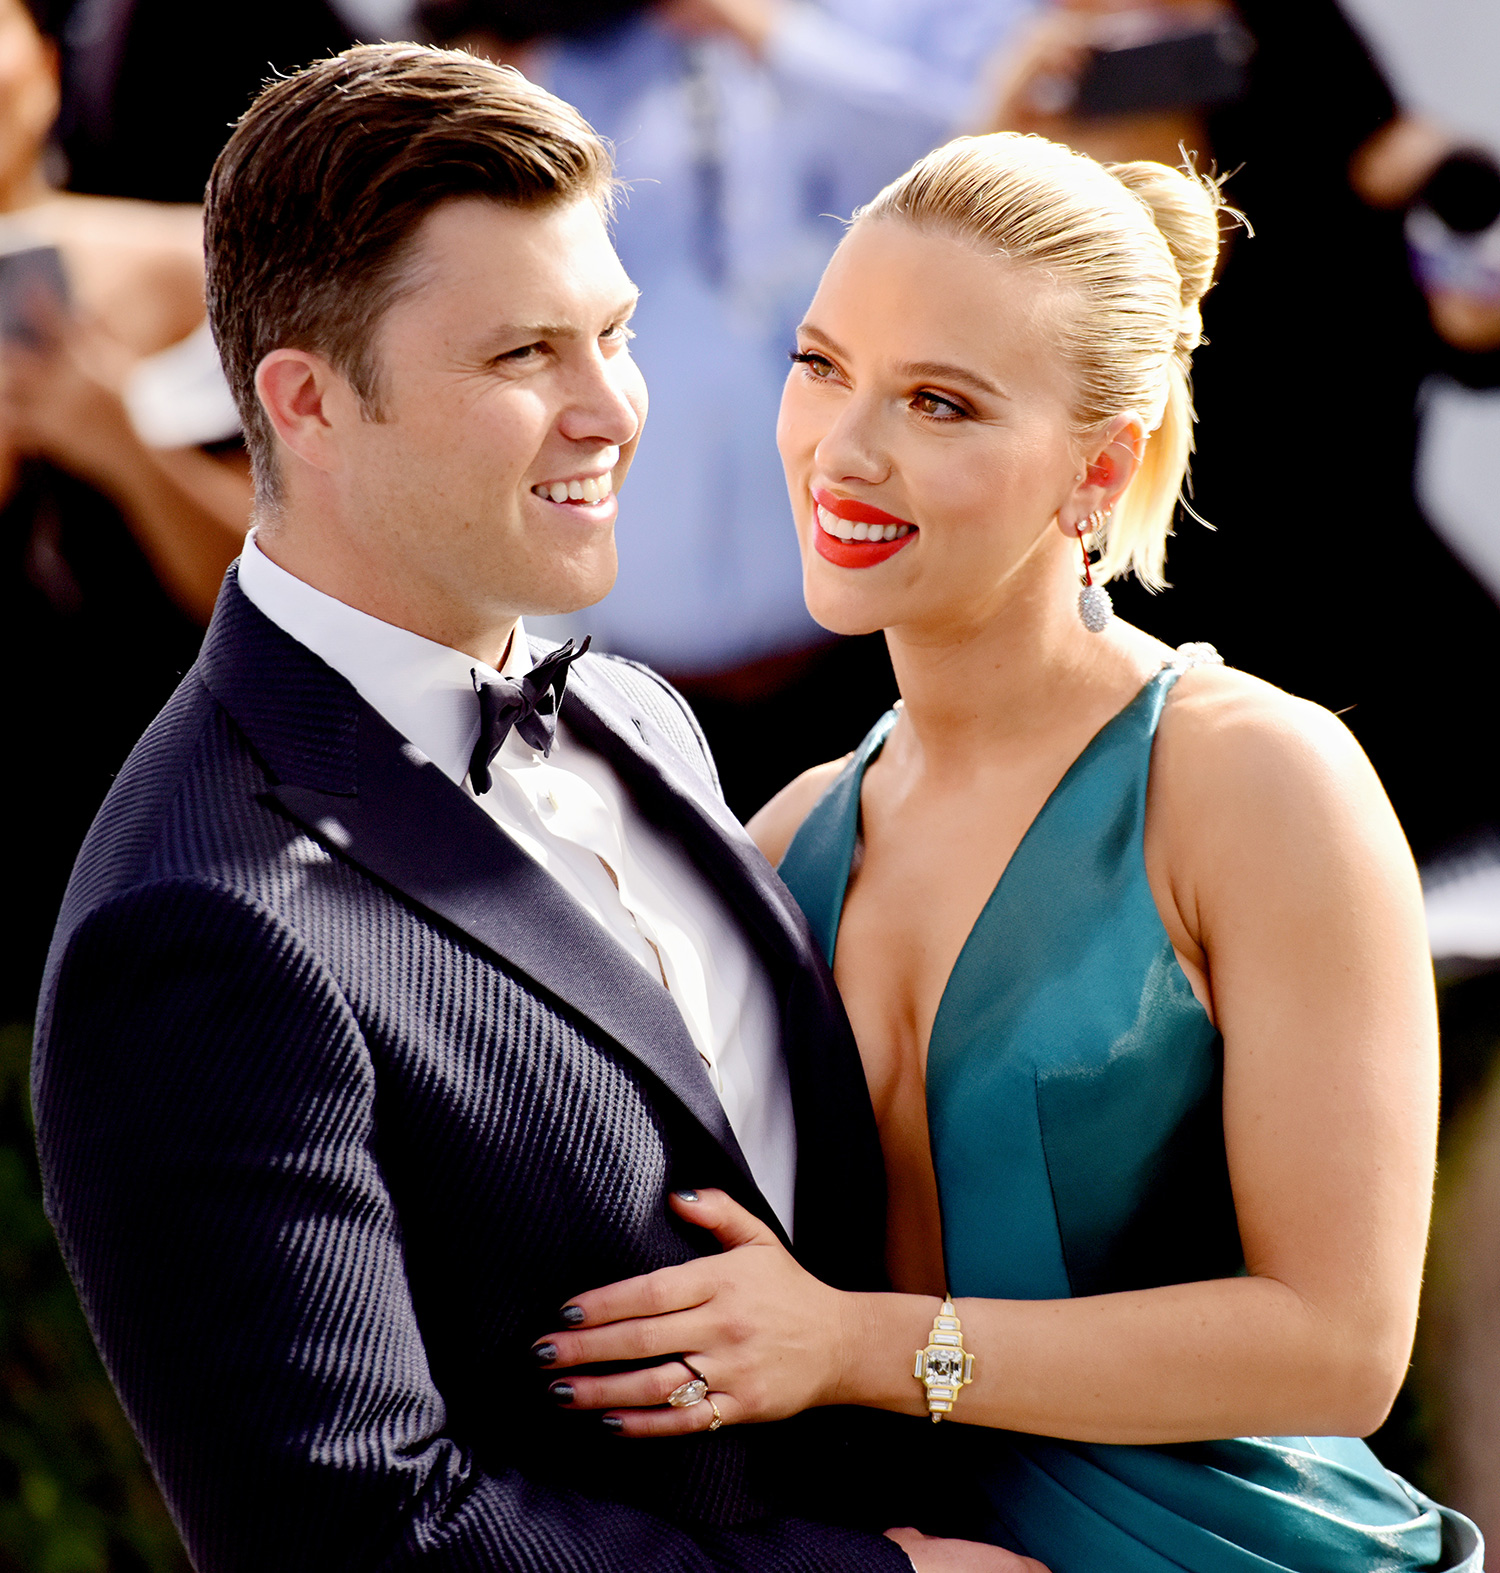 Colin Jost (L) and Scarlett Johansson attend the 26th annual Screen Actors Guild Awards at The Shrine Auditorium on January 19, 2020 in Los Angeles, California